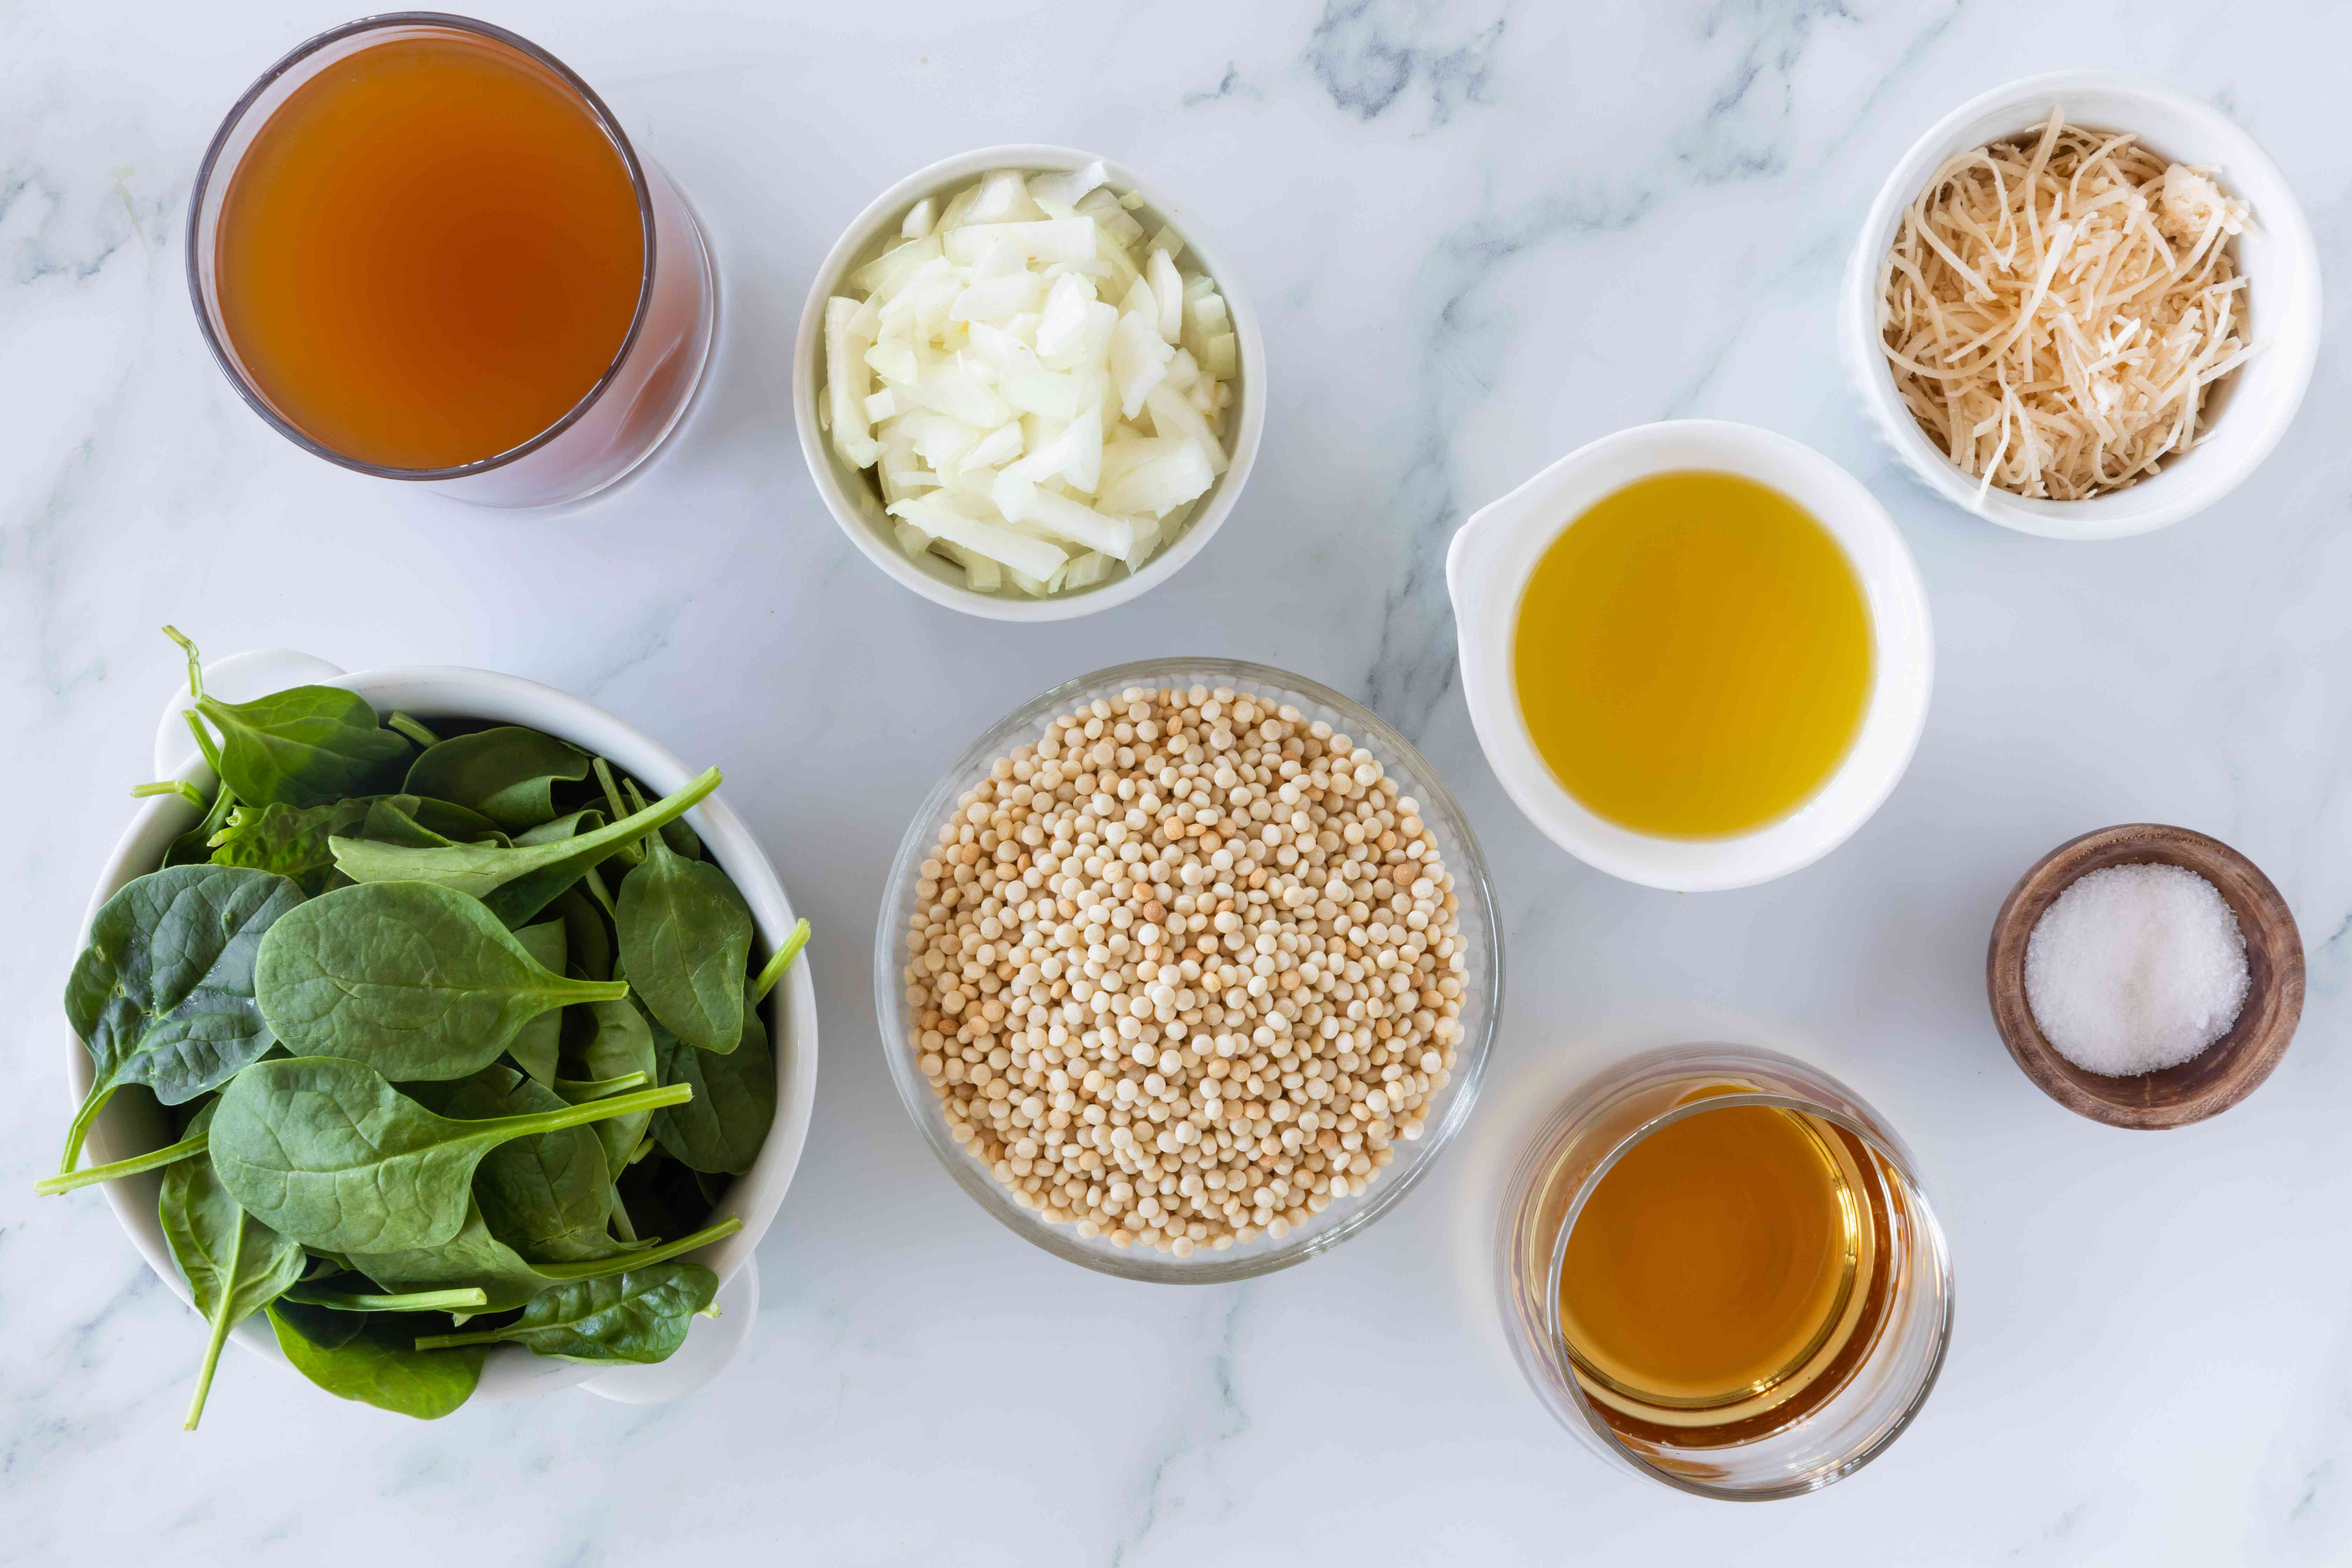 Ingredients for Israeli couscous risotto with spinach